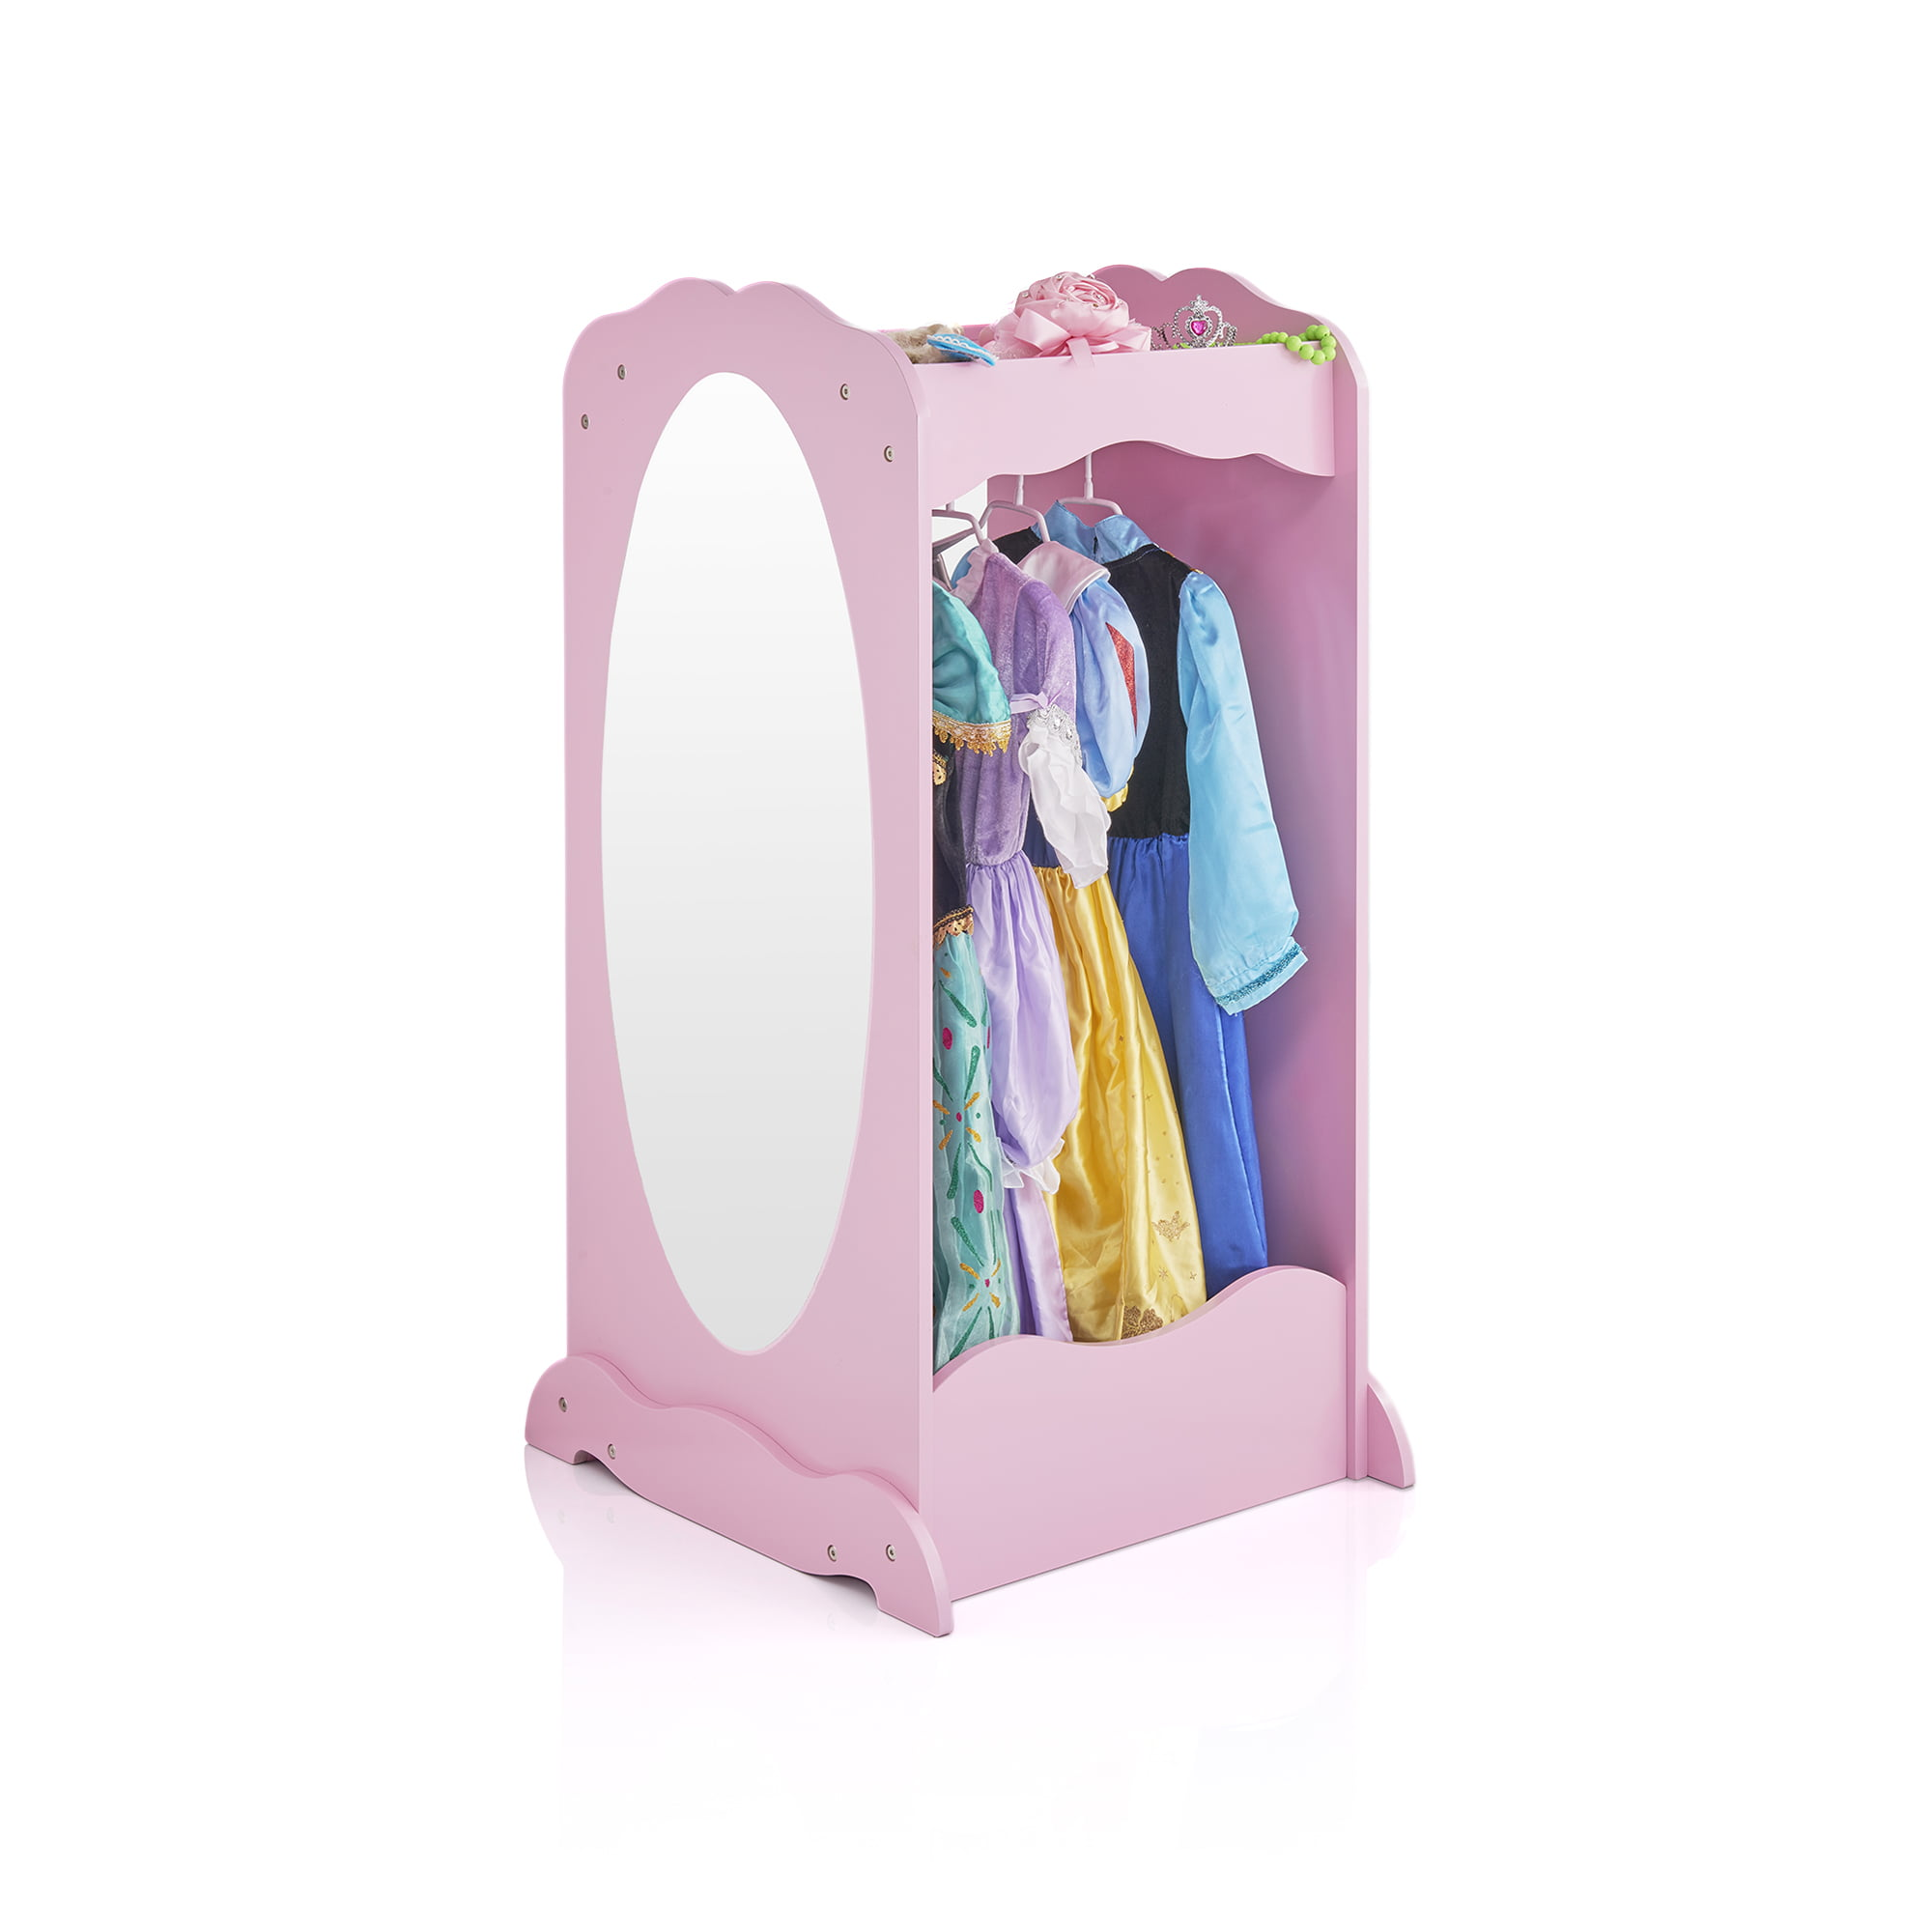 Dress-Up Cubby Center Pink by GC Exclusives